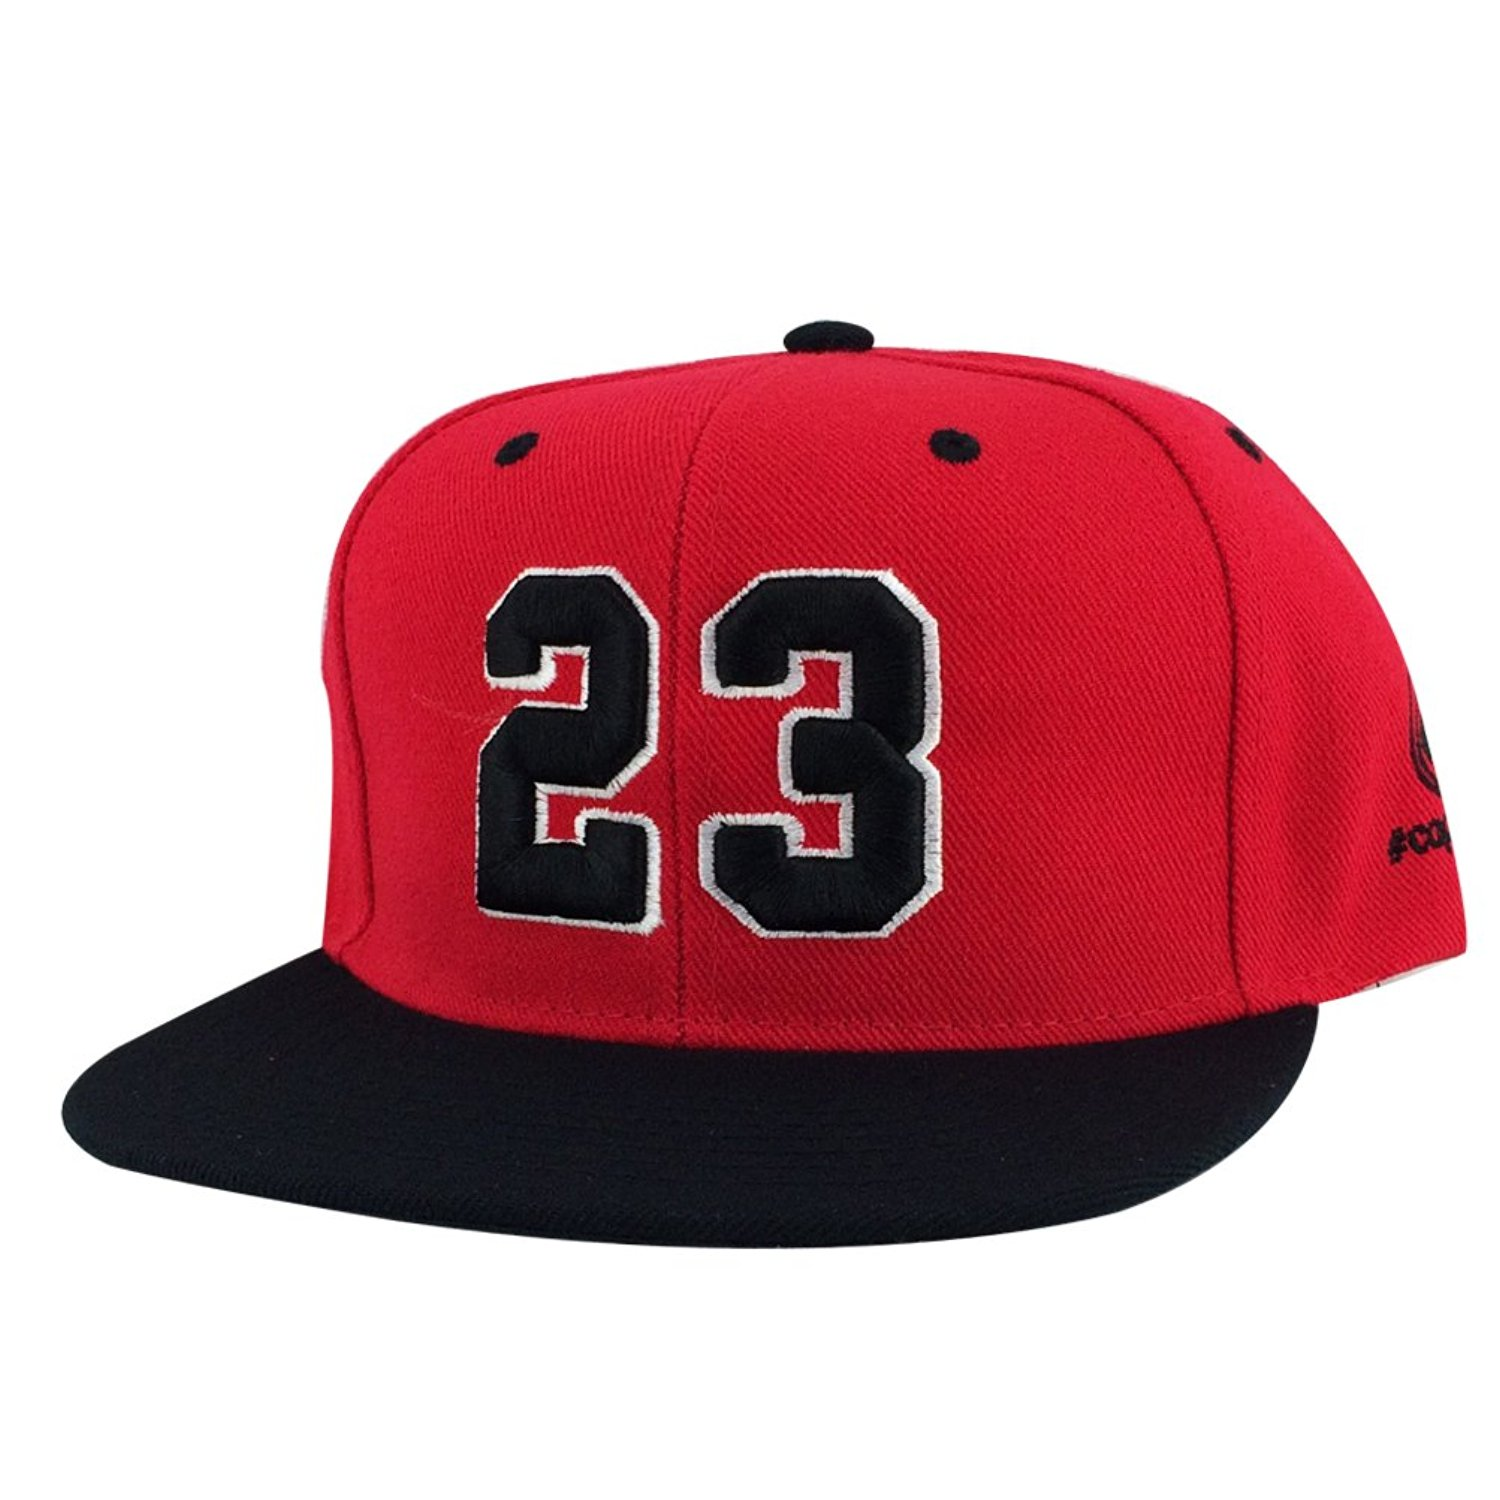 86acc243 Get Quotations · Number #23 Red White Black Visor Snapback Hat Cap X Air  Jordan Og Bulls